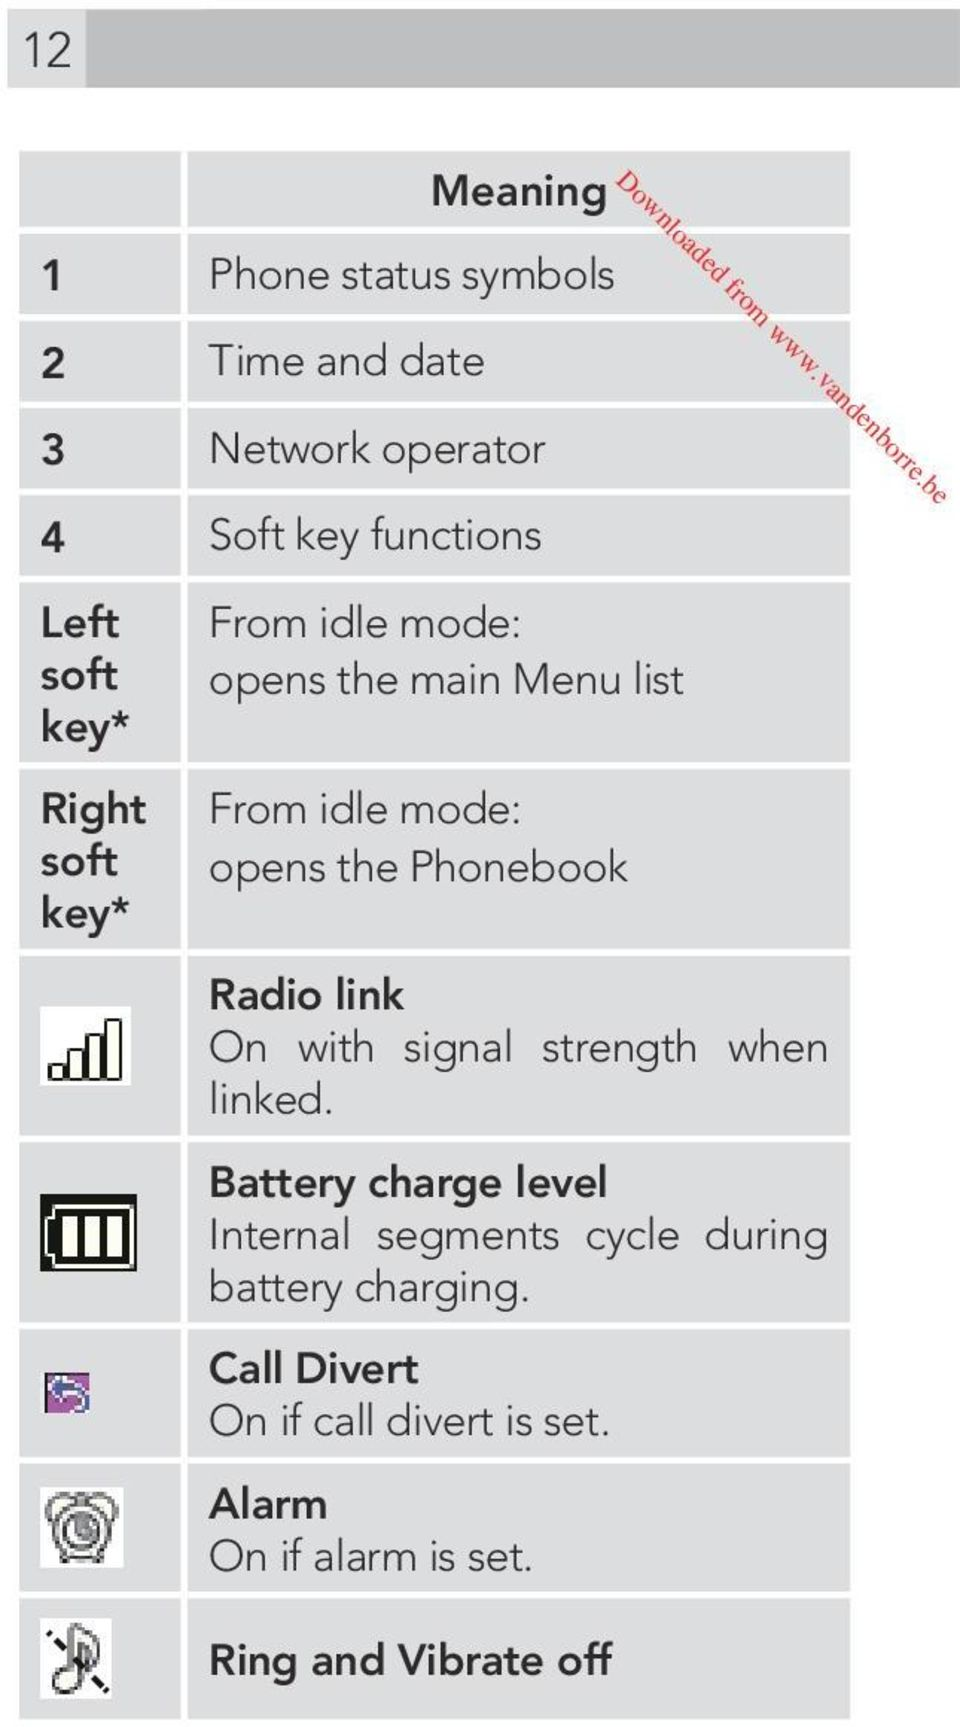 Radio link On with signal strength when linked.